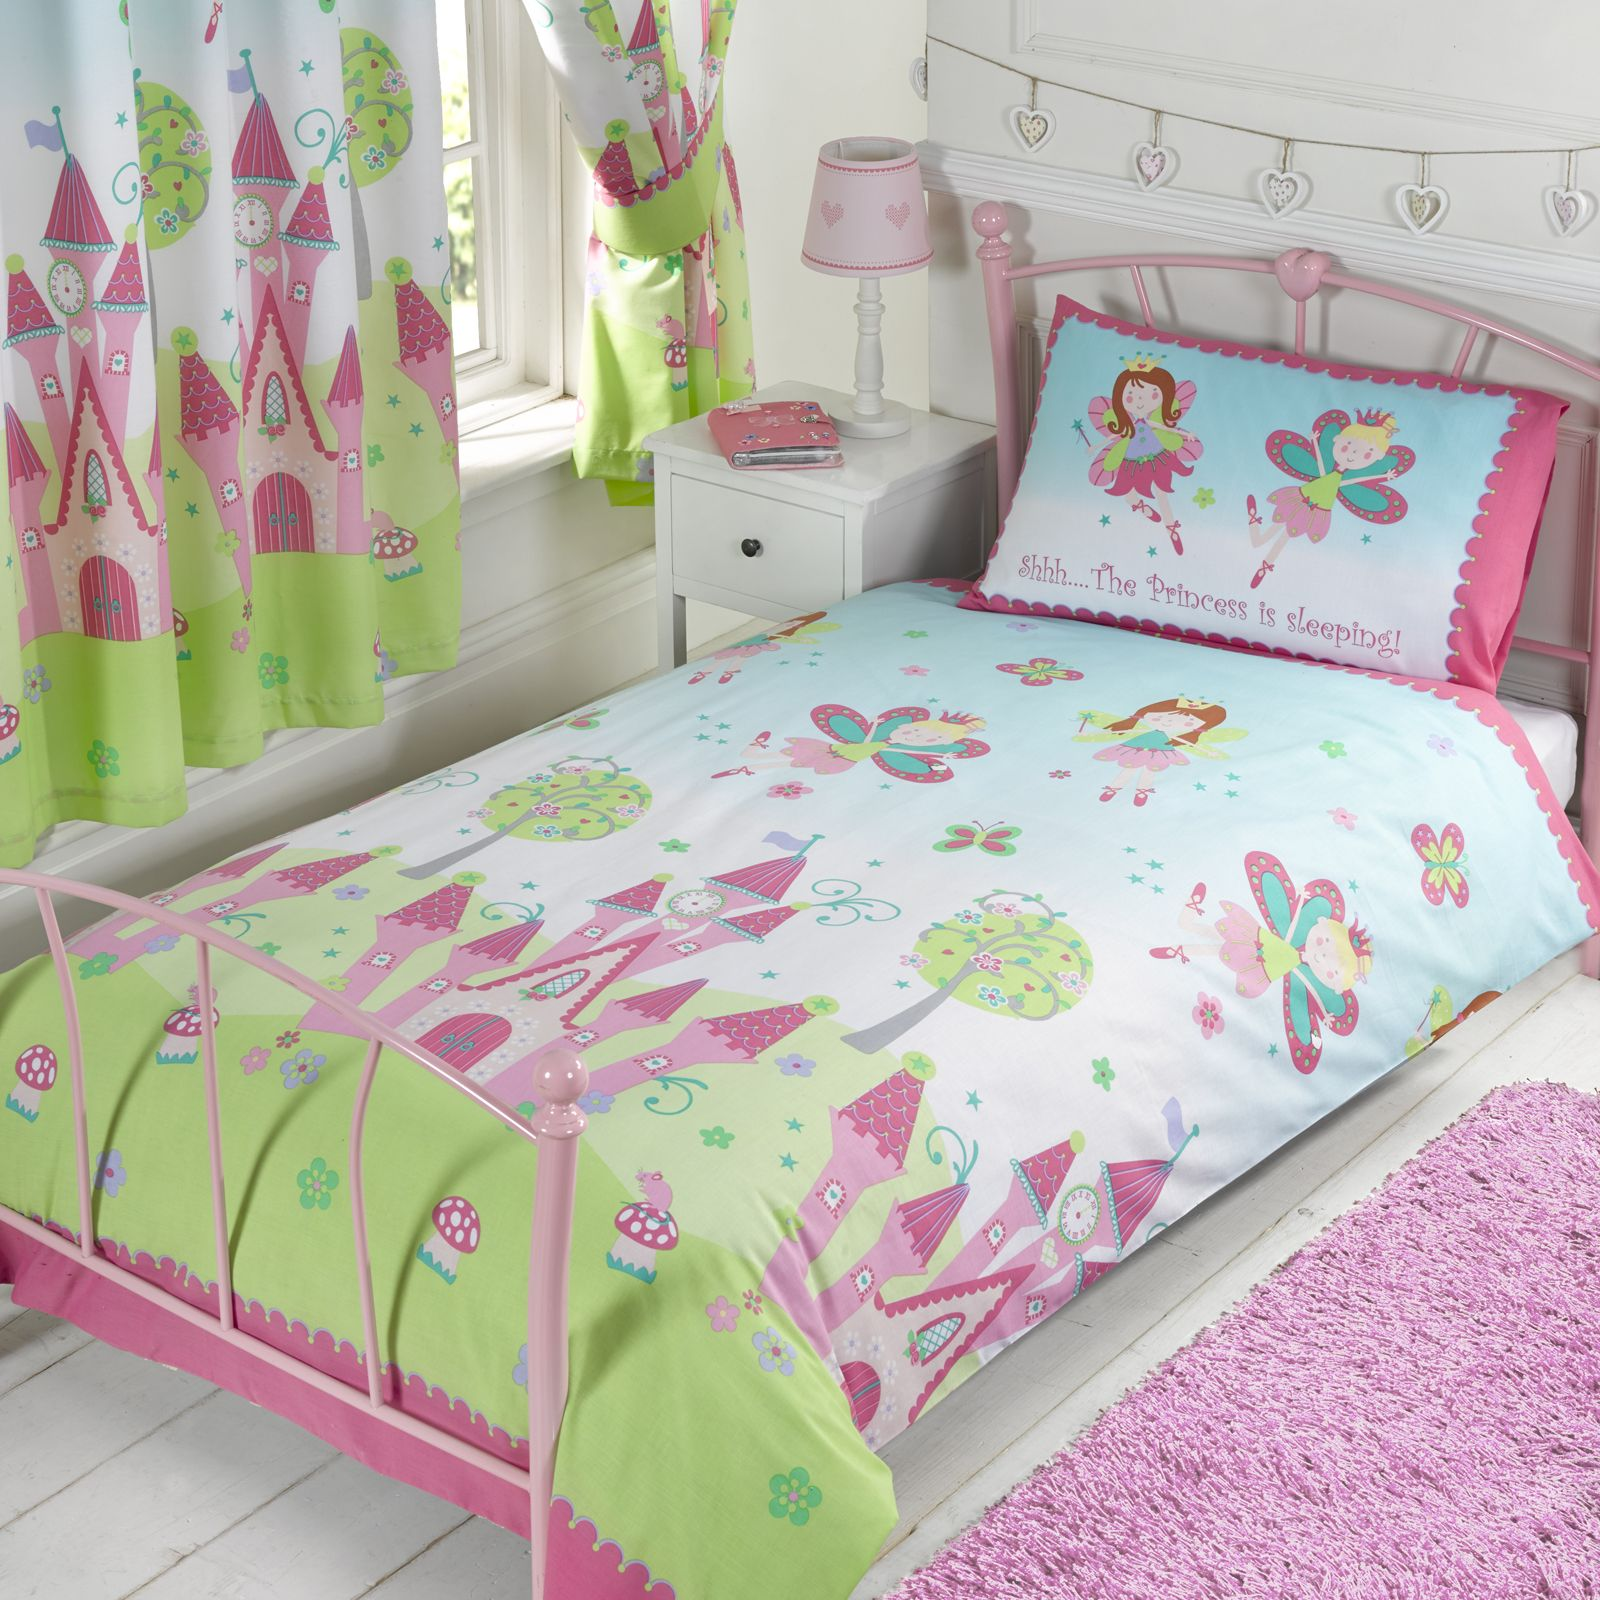 Girls Bedding Fairy Princess 39sleeping 39 Single Duvet Cover Set New Girls